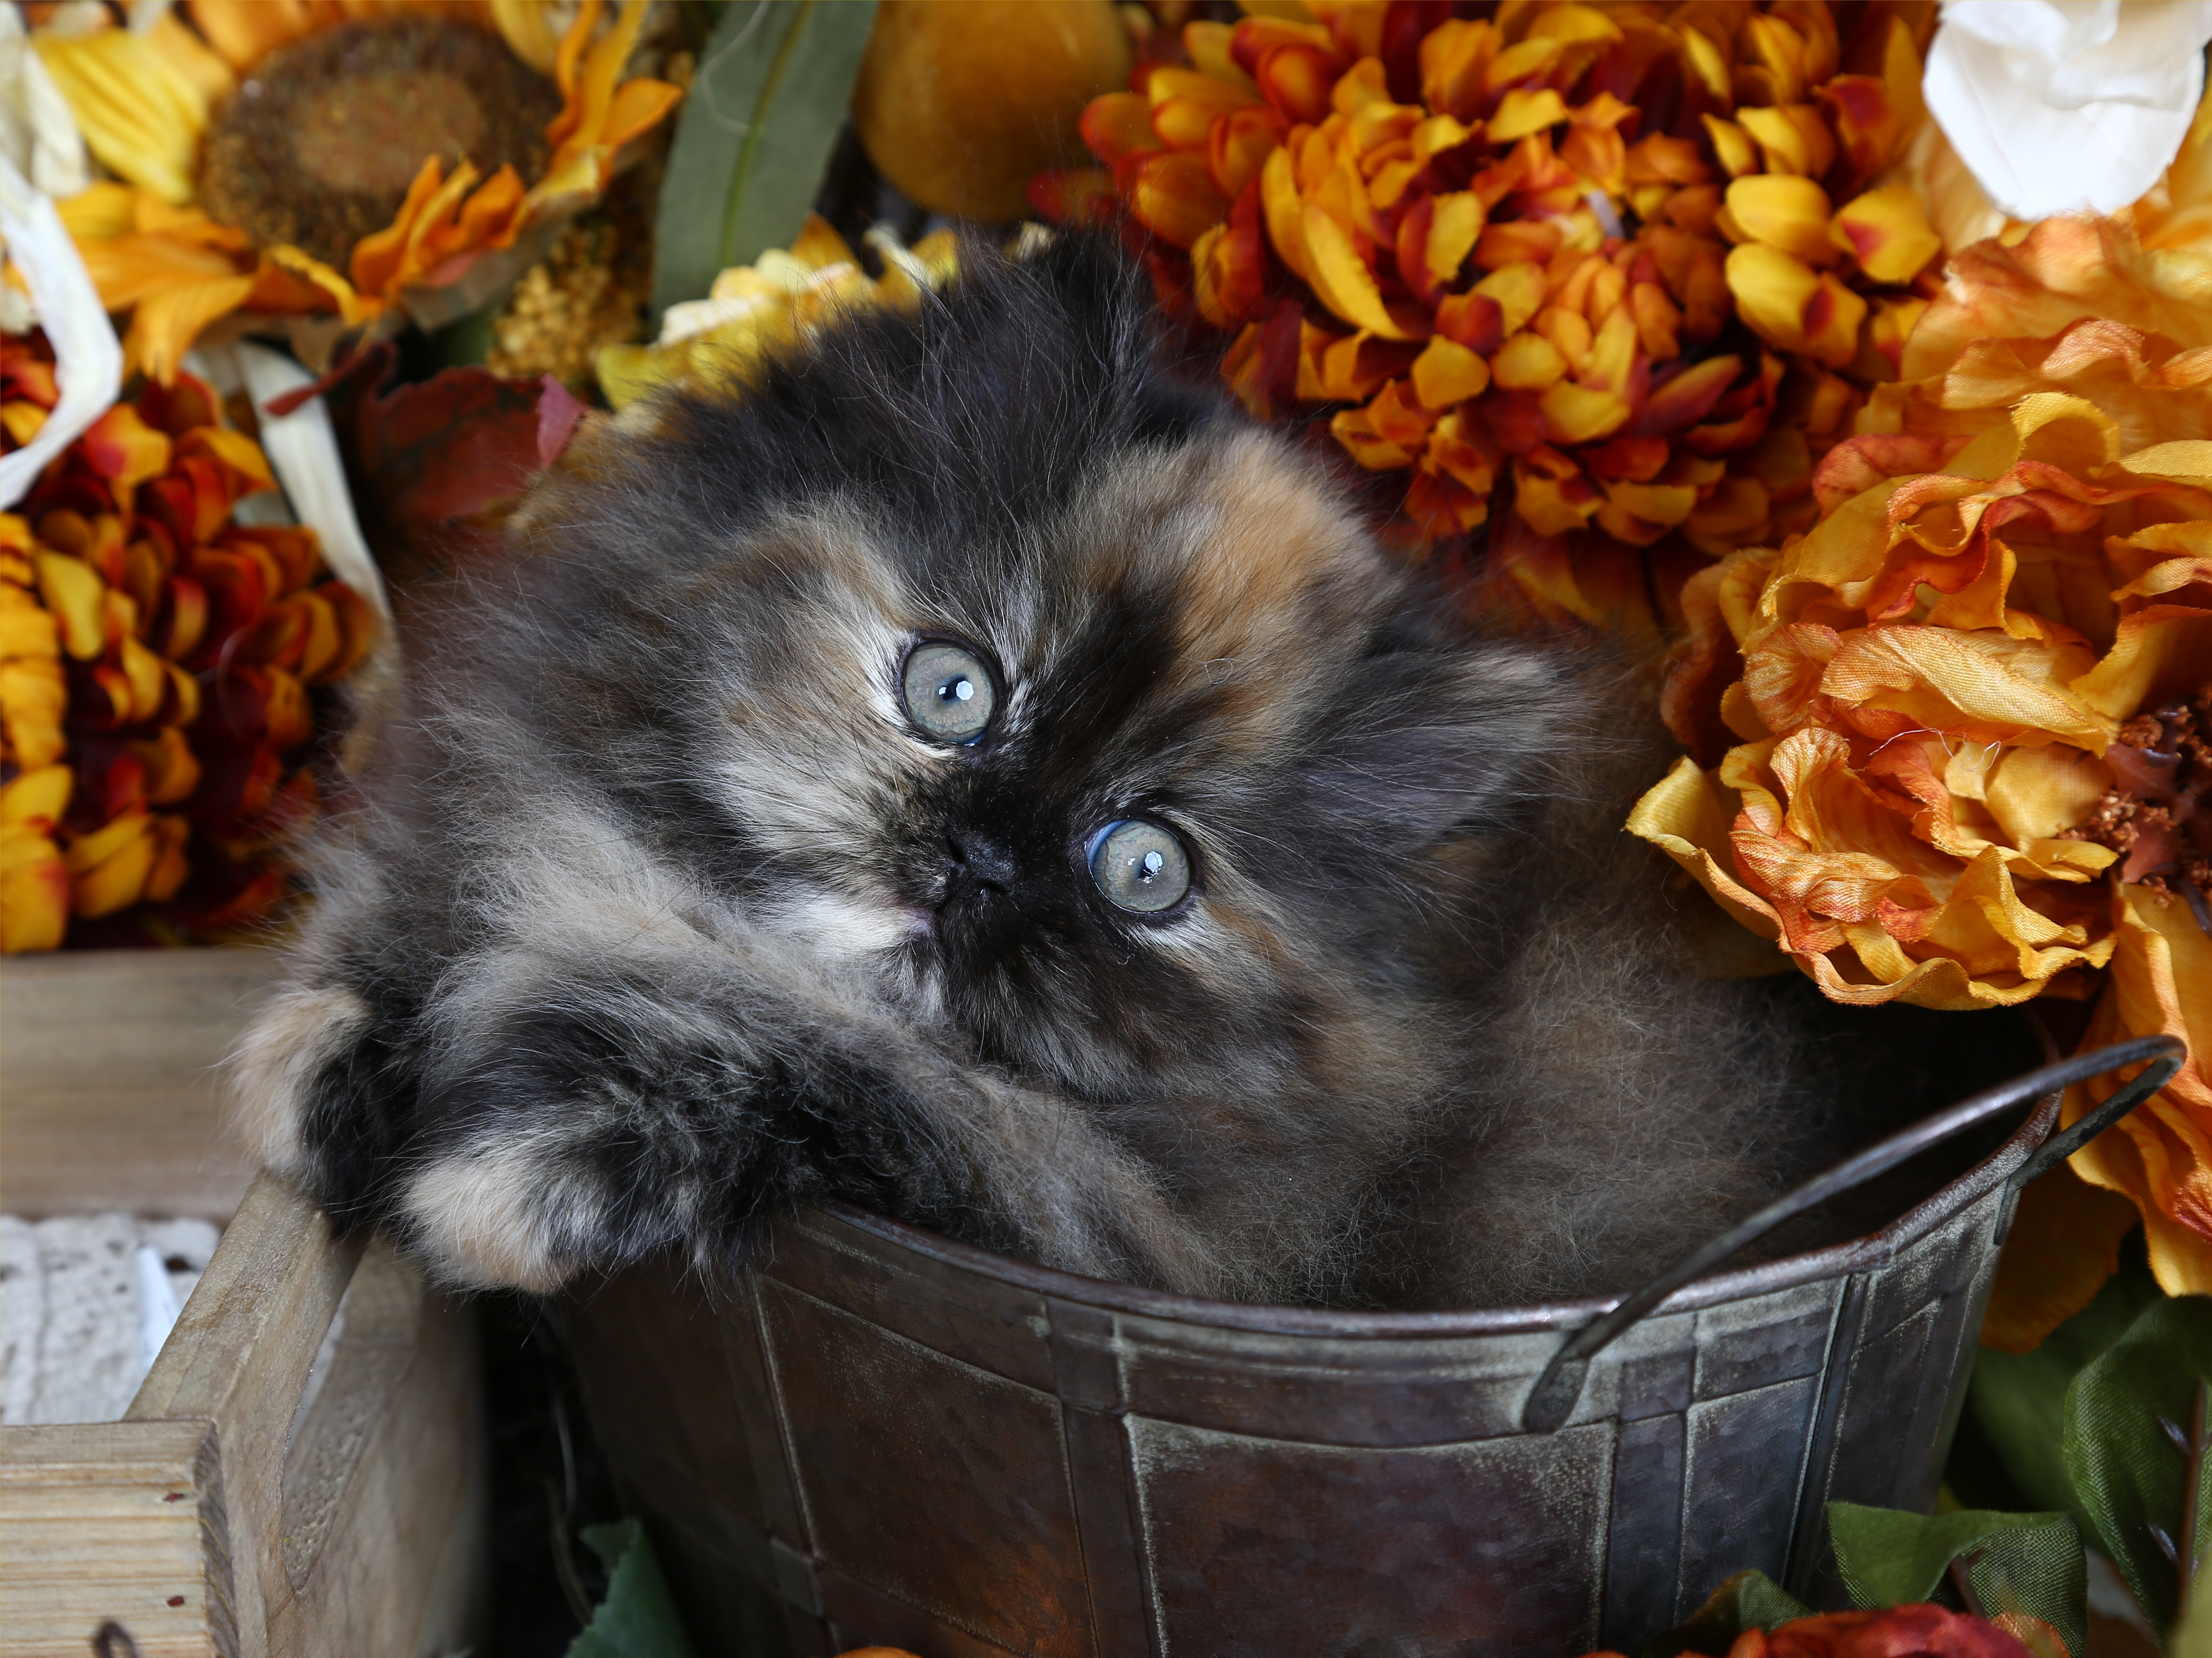 Calico KittensUltra Rare Persian Kittens For Sale – 660 292 2222